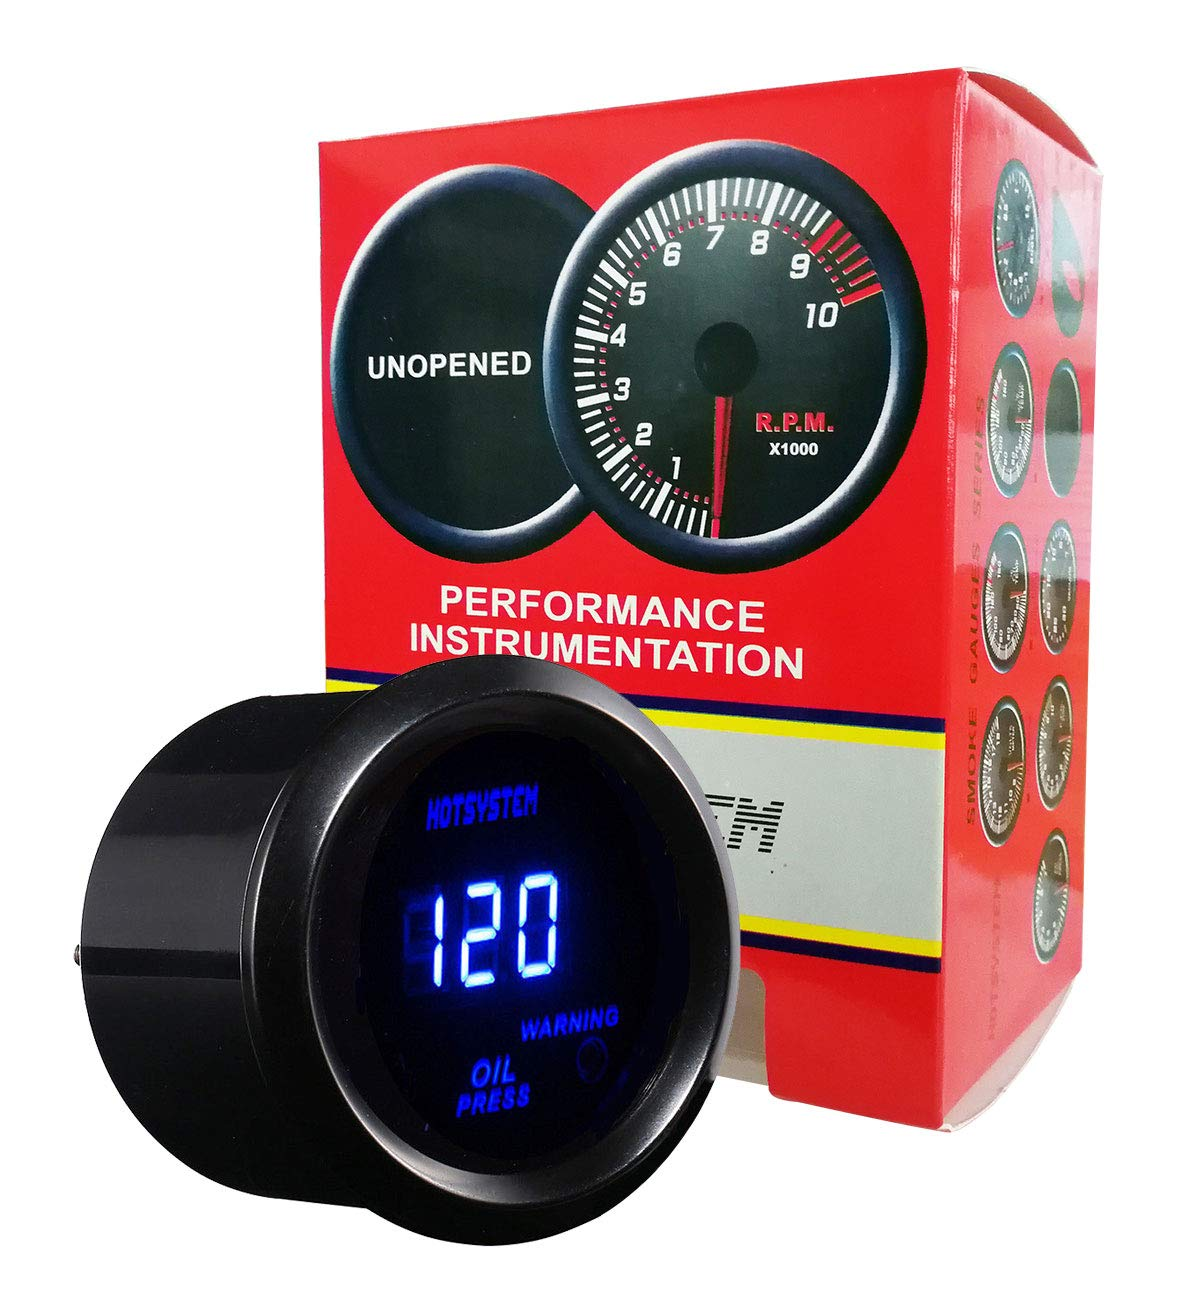 HOTSYSTEM Electronic Universal OIL Pressure Press Gauge Meter Blue Digital LED 2inches 52mm 0-120 PSI for Car Vehicle Automotive